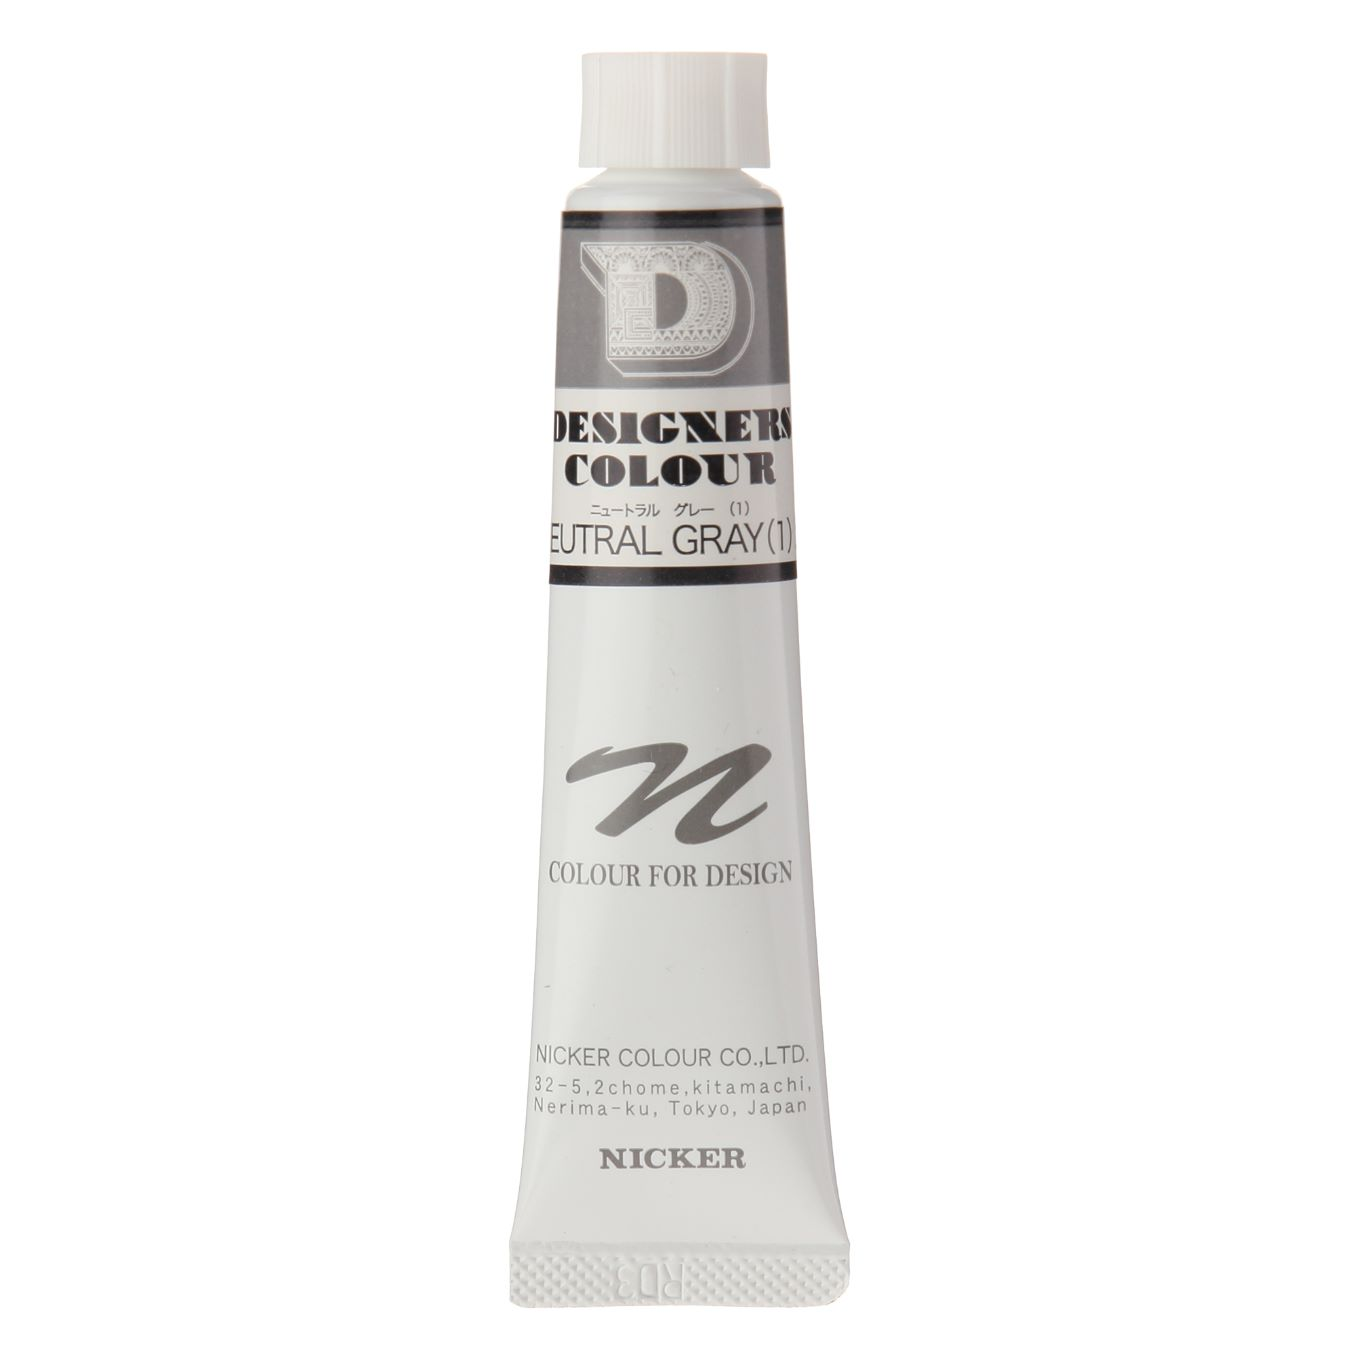 DESIGNERS COLOUR 20ml 596 NEUTRAL GRAY(1)